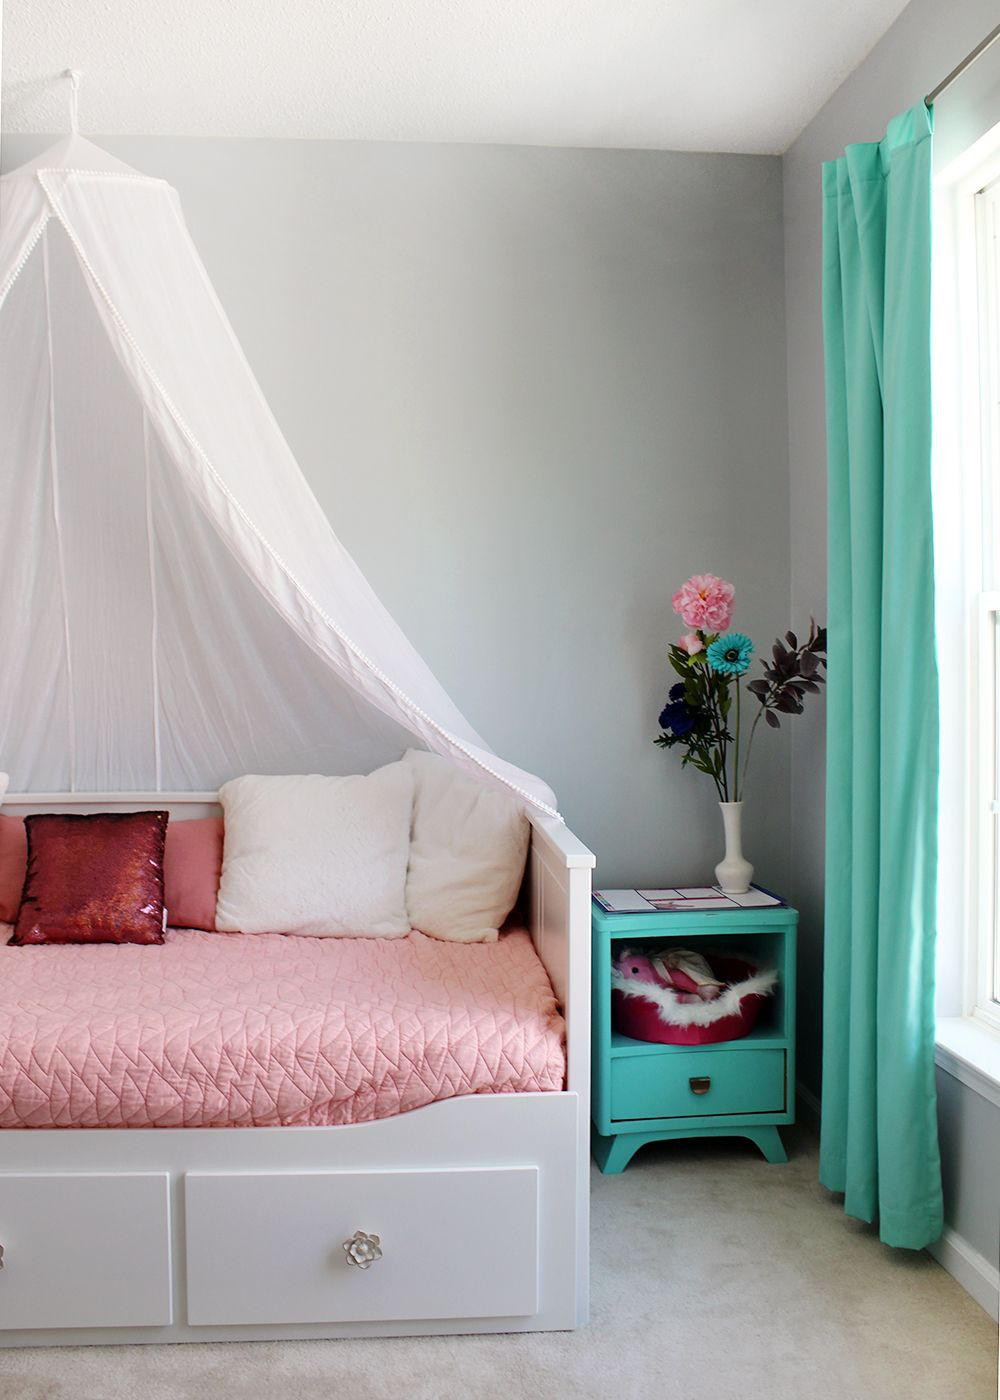 A Colorful Tween Girl S Bedroom Makeover Daybed With Storage Girls Bedroom Daybed Tween Girl Bedroom